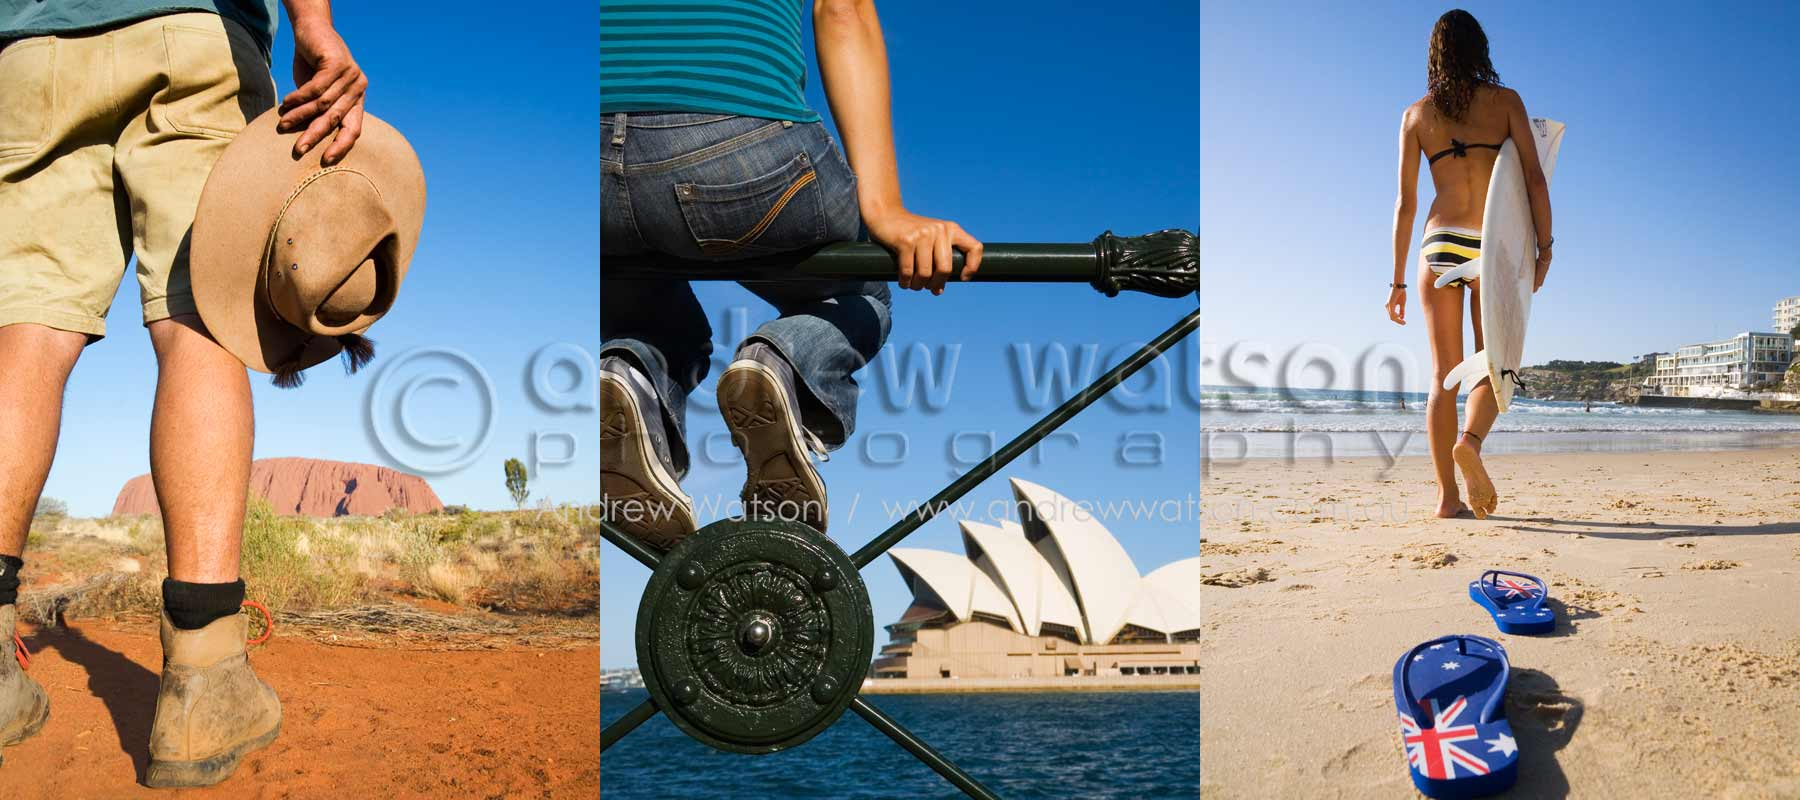 Tourism & Lifestyle Photography - Iconic Australian locations from the Outback to Bondi Beach